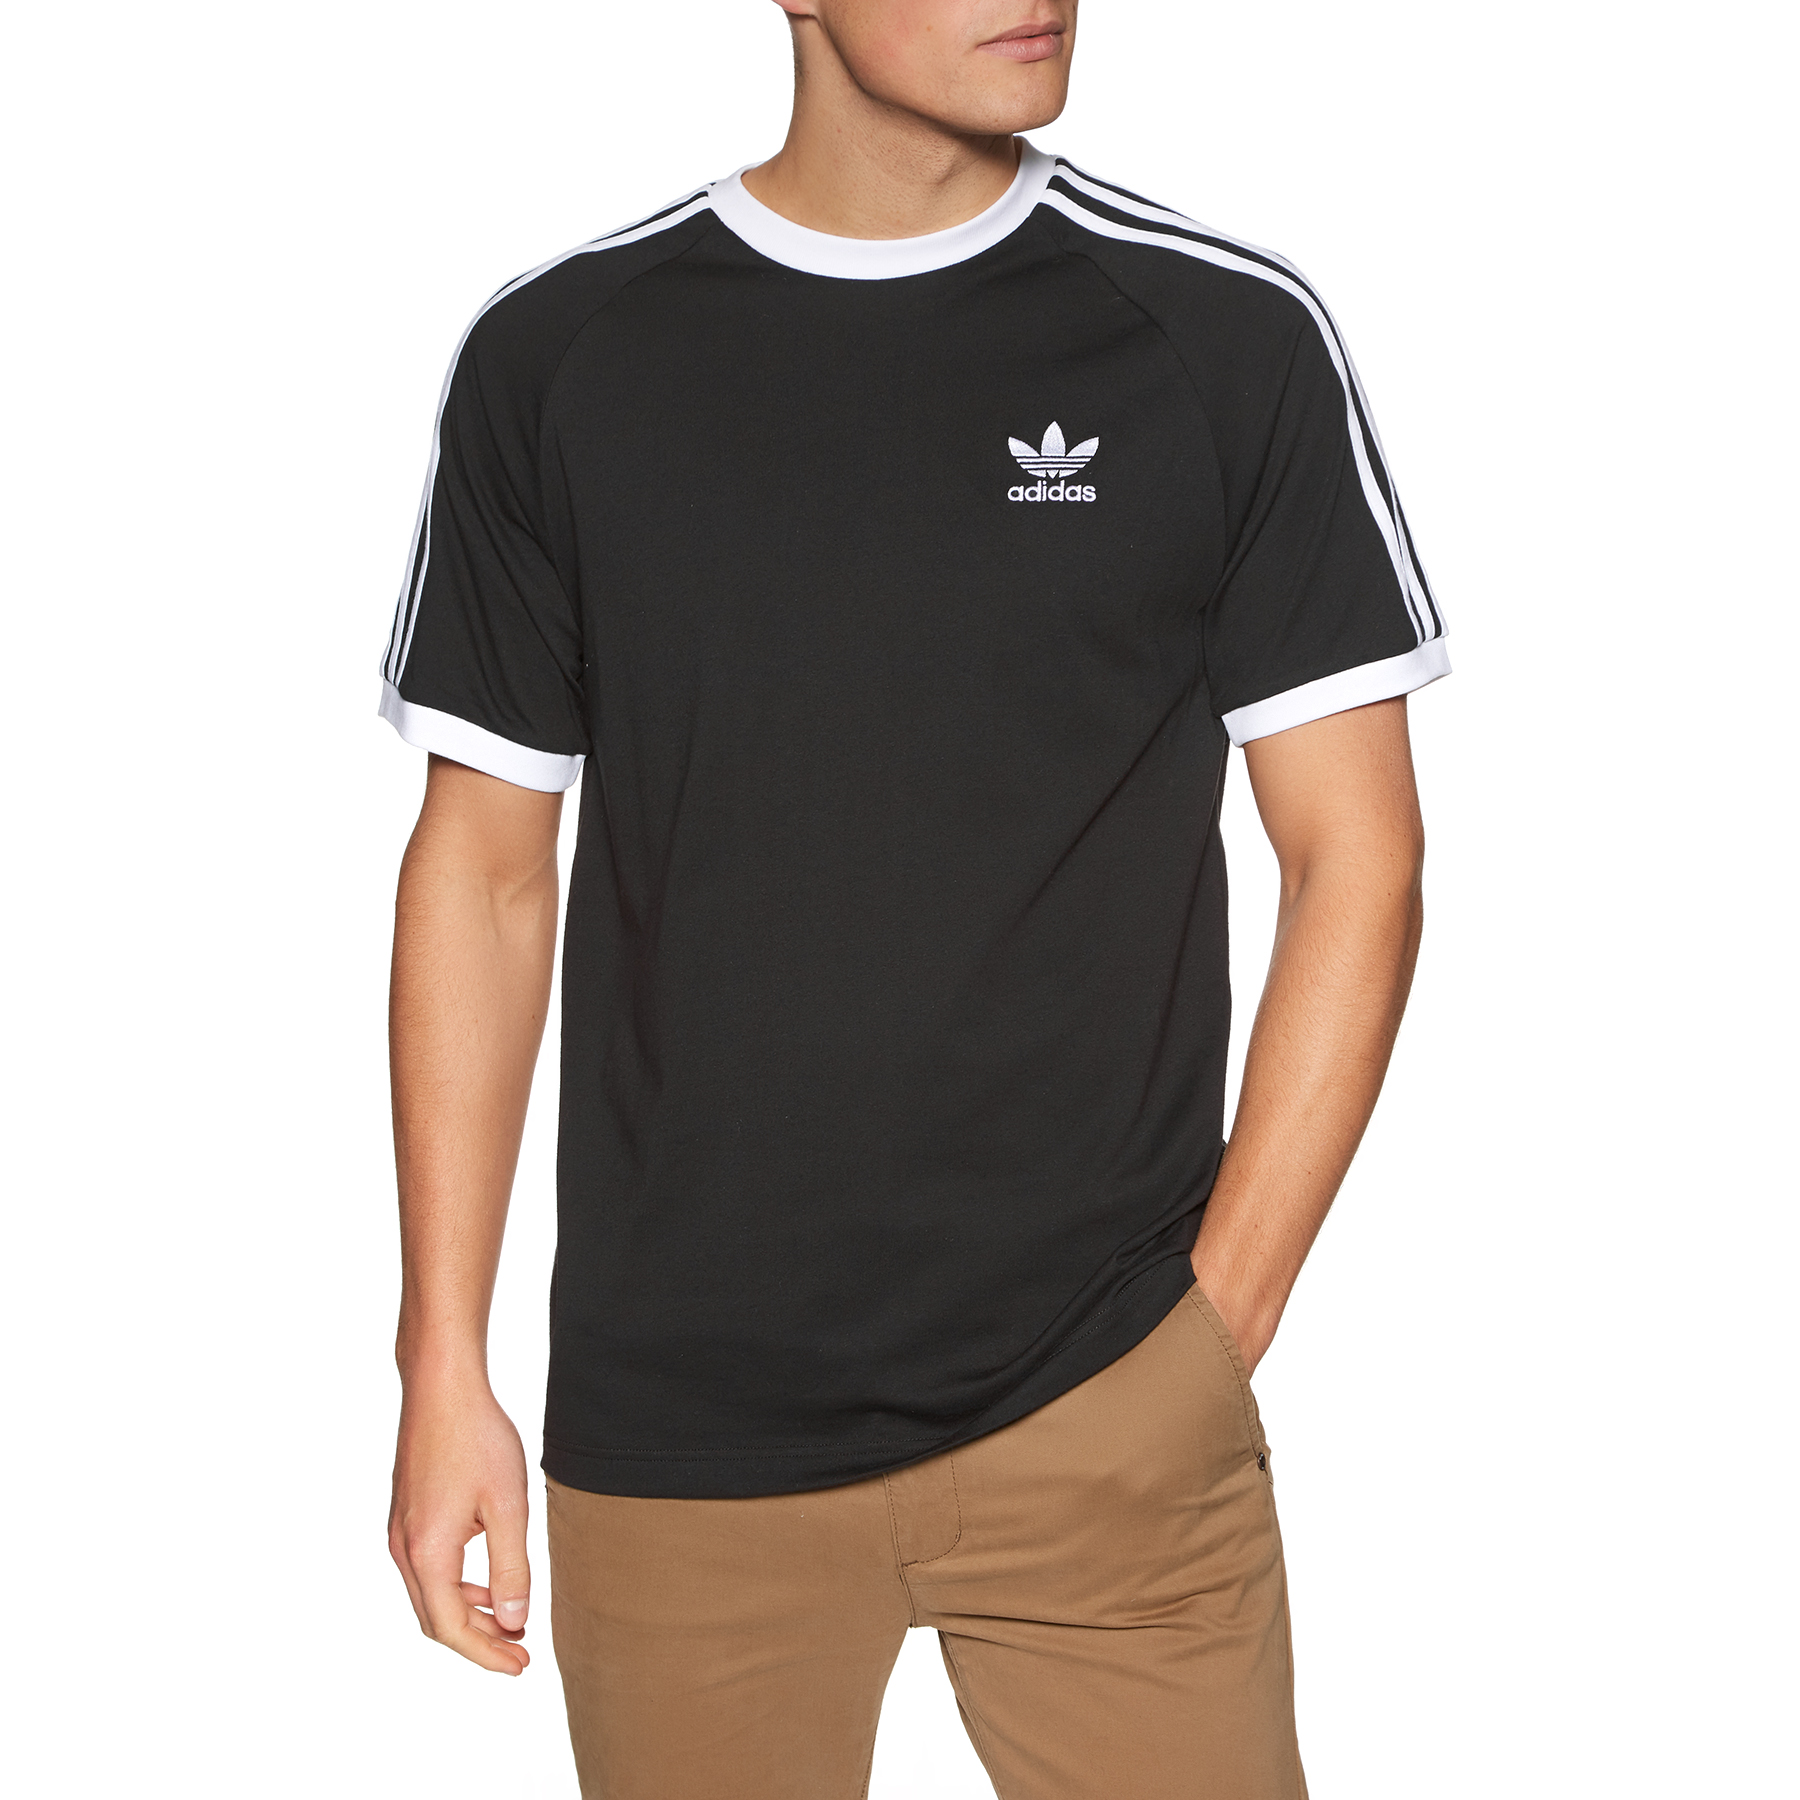 Camiseta Adidas Originals Filled Label Branca Red